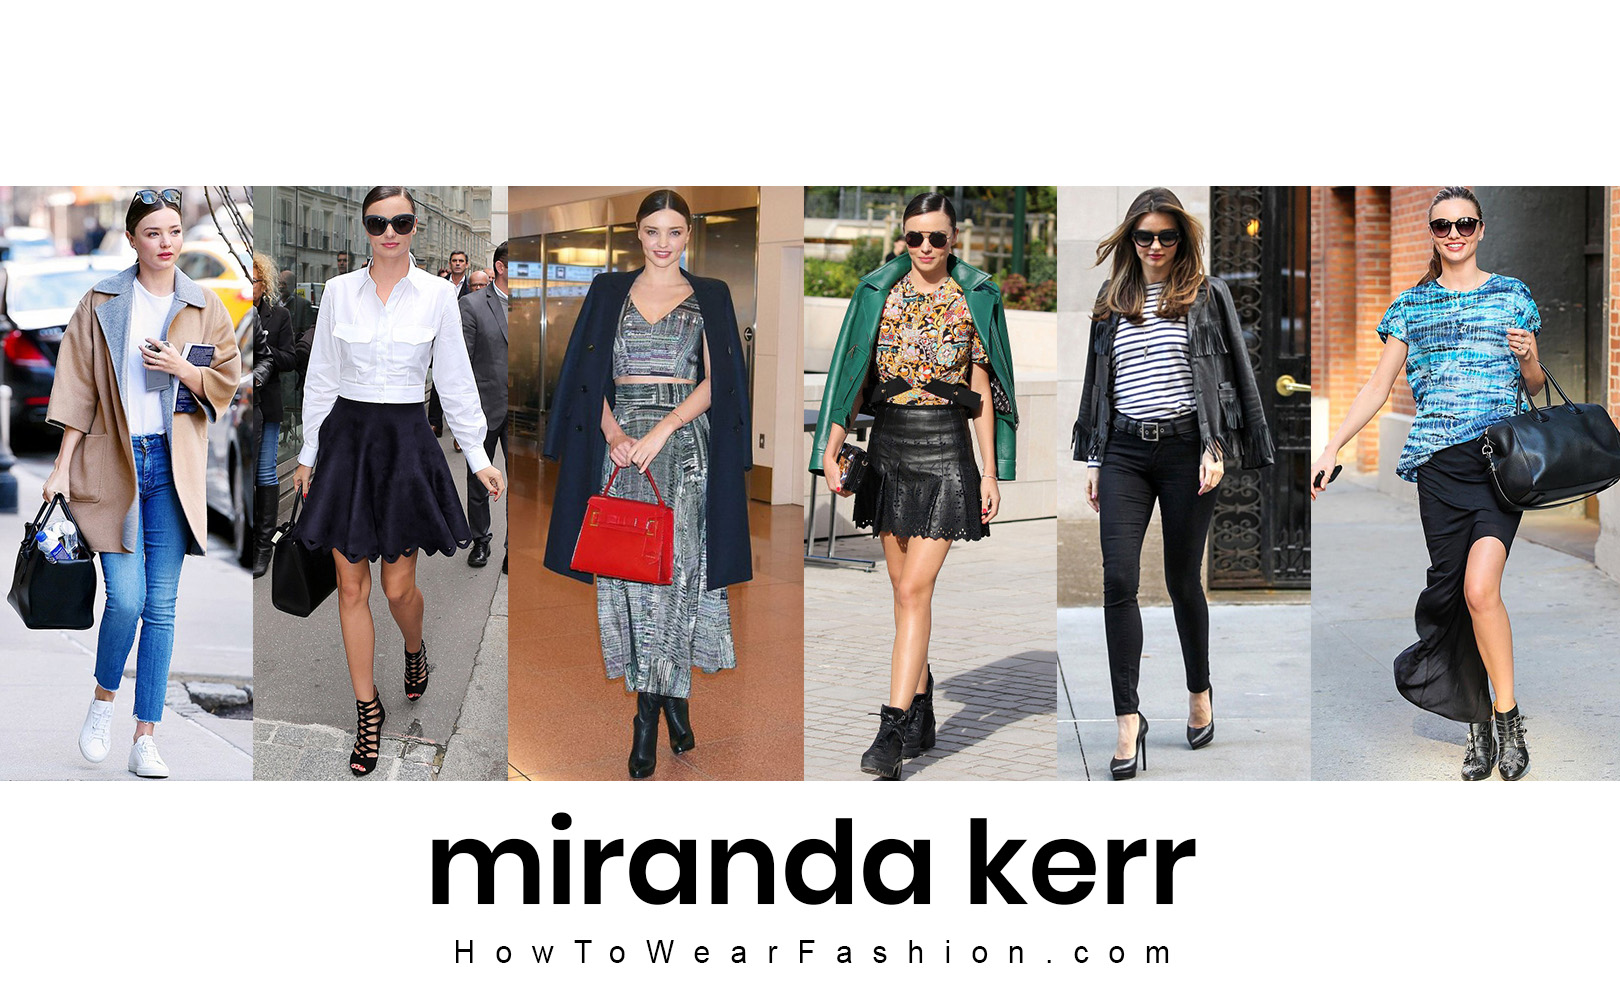 Miranda Kerr's fashion style! See all her best outfit looks here.